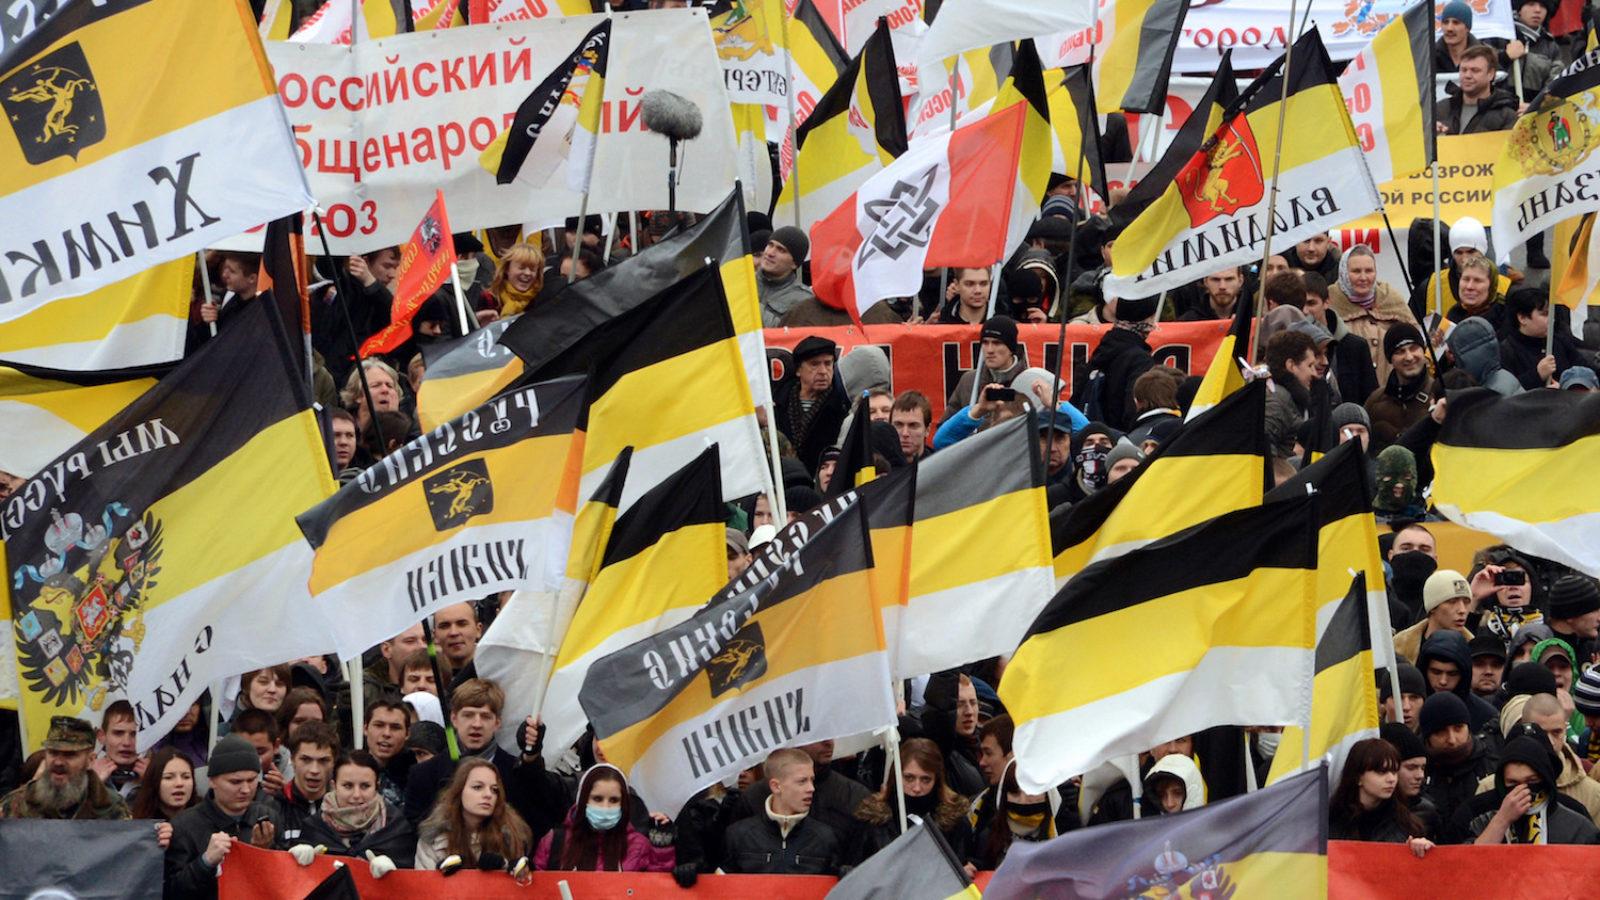 Russian ultra-nationalists wave Russian Empire's black-yellow-white flags as they take part in the so-called